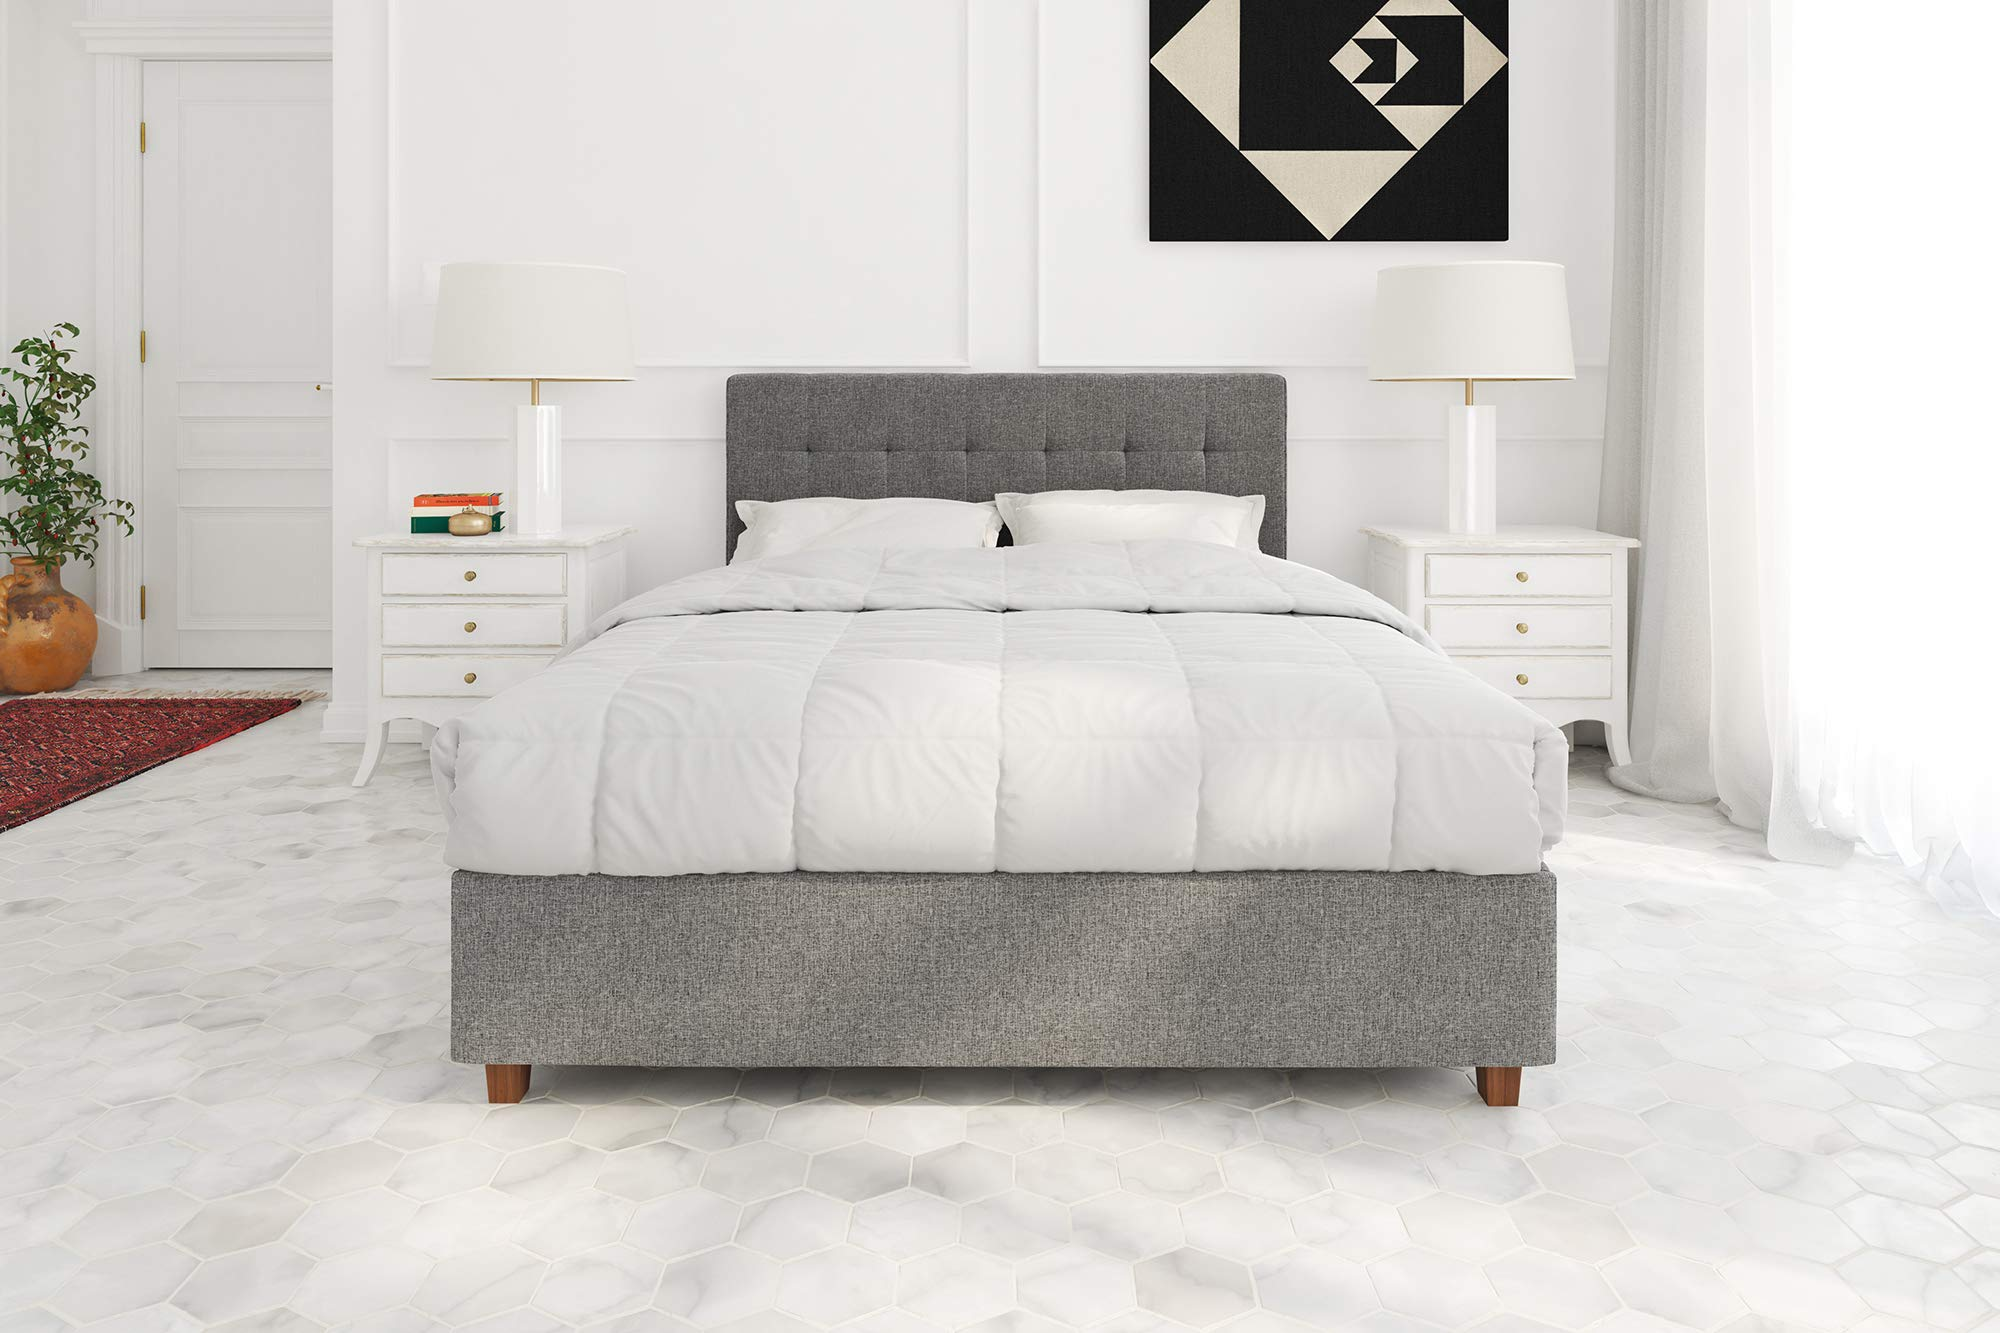 DHP Poppy Tufted Upholstered Platform Bed Frame, Grey Linen, Full by DHP